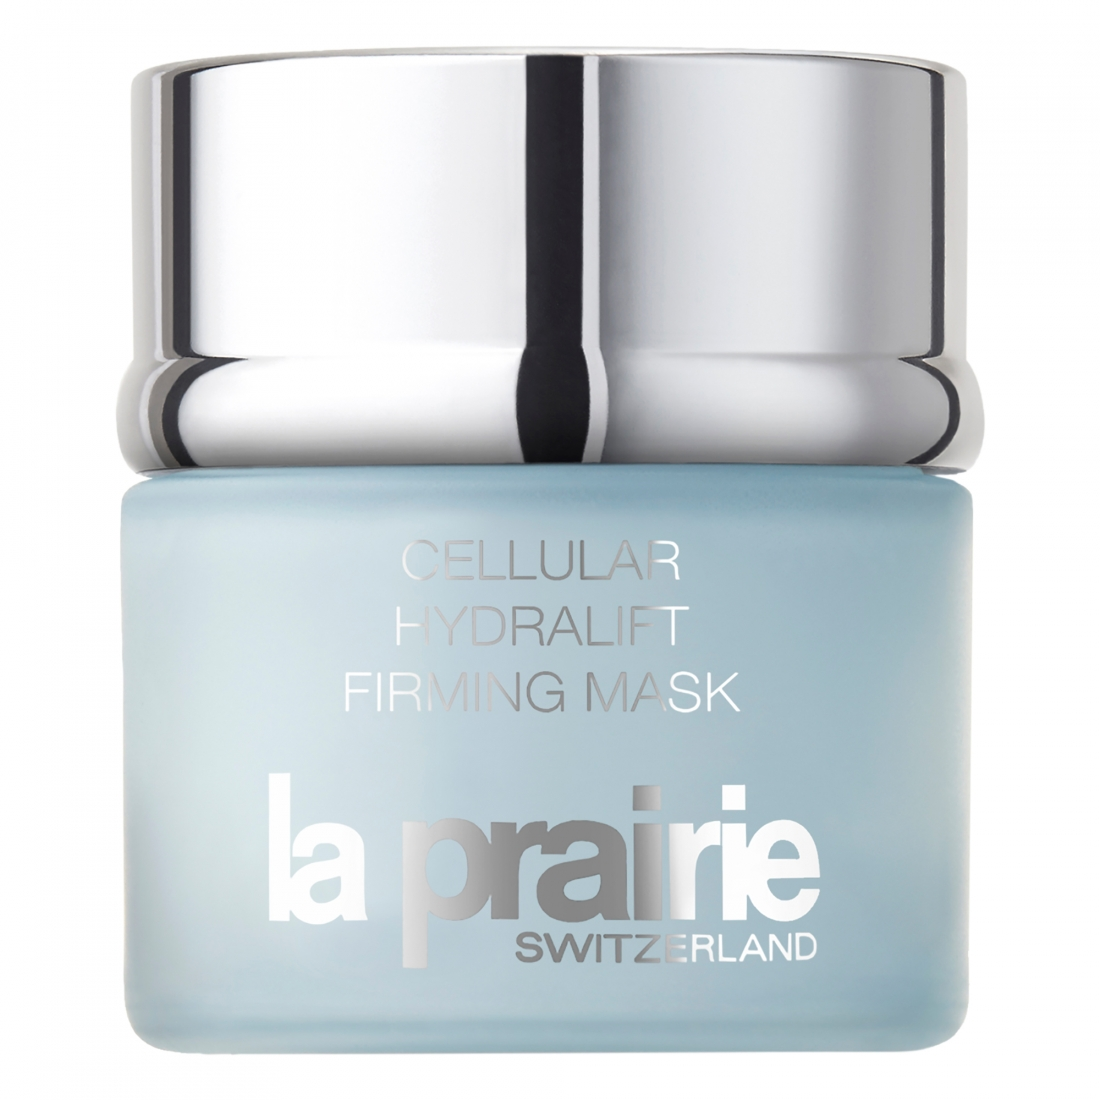 related product products/images/LaPrairie-CellularHydraliftFirmingMask